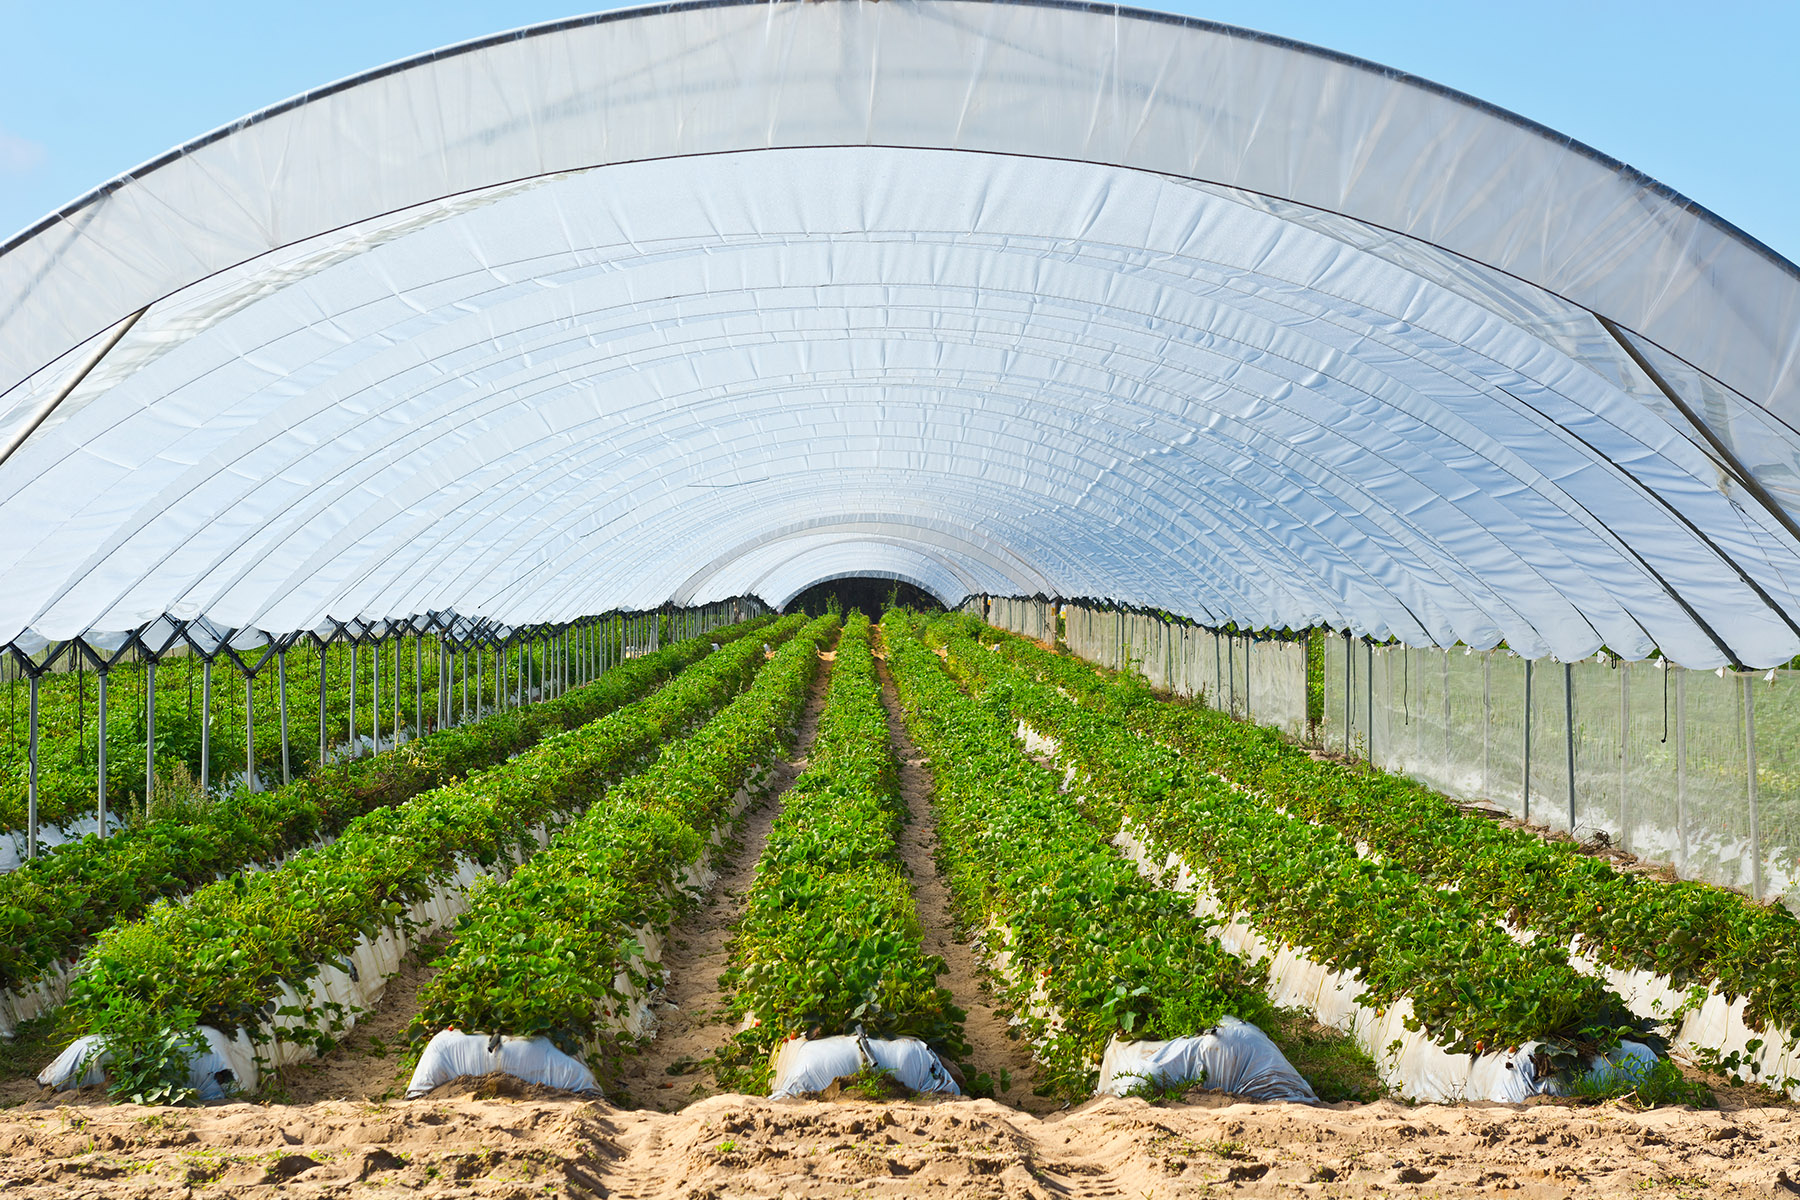 Strawberry greenhouse in Portugal